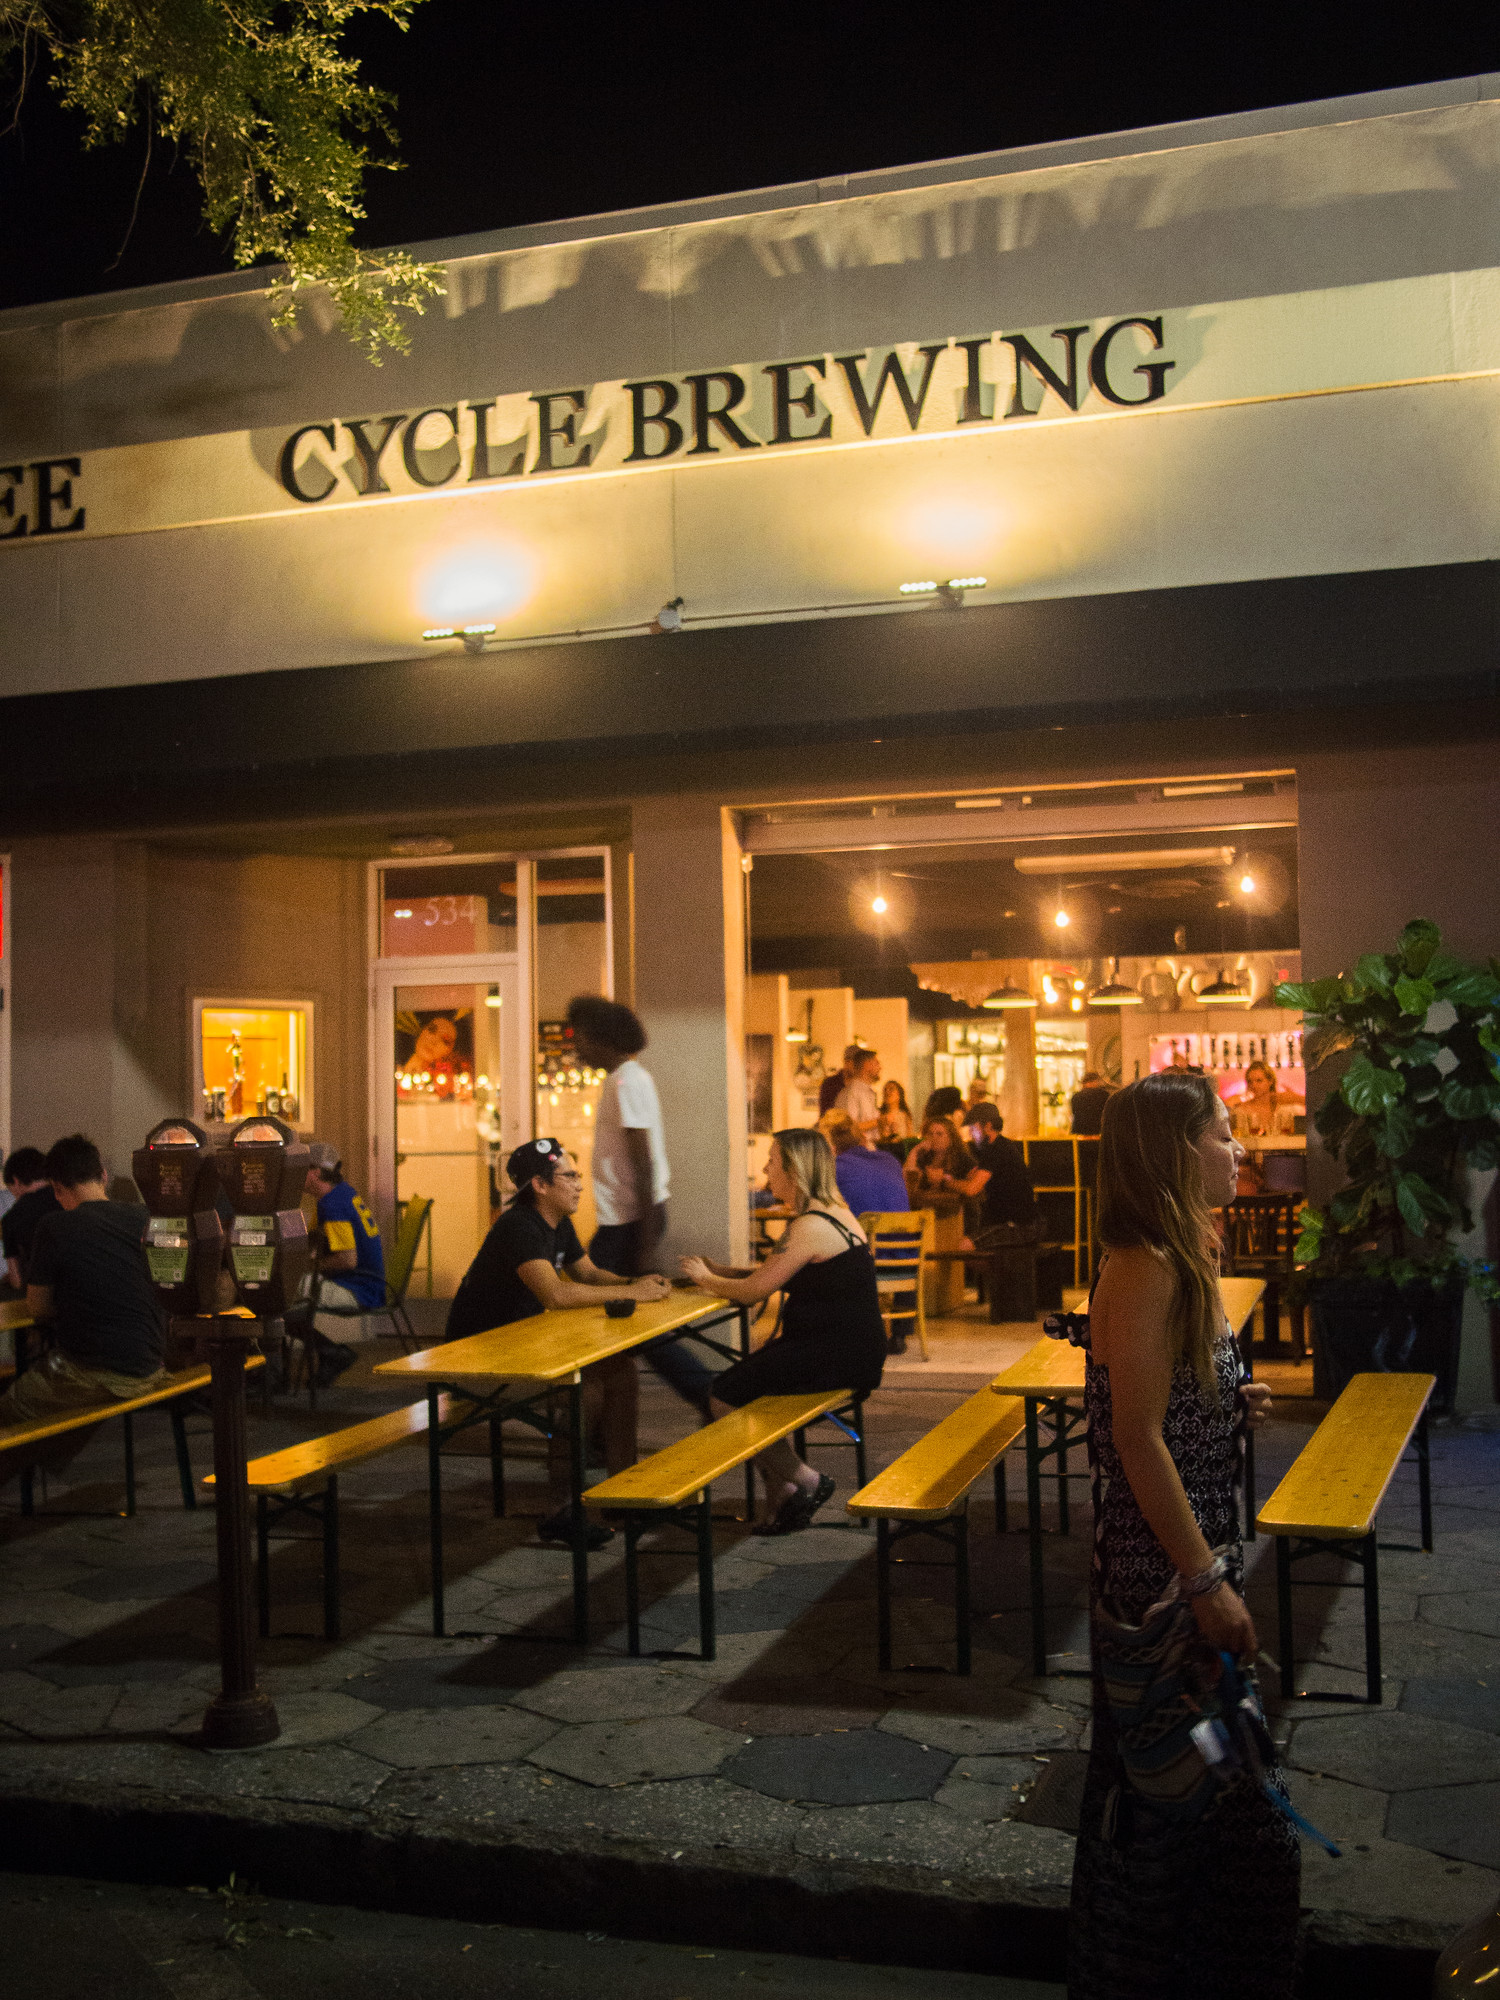 Cycle Brewing, just one of the amazing bars and restaurants in St.Petersburg you'll want to visit.